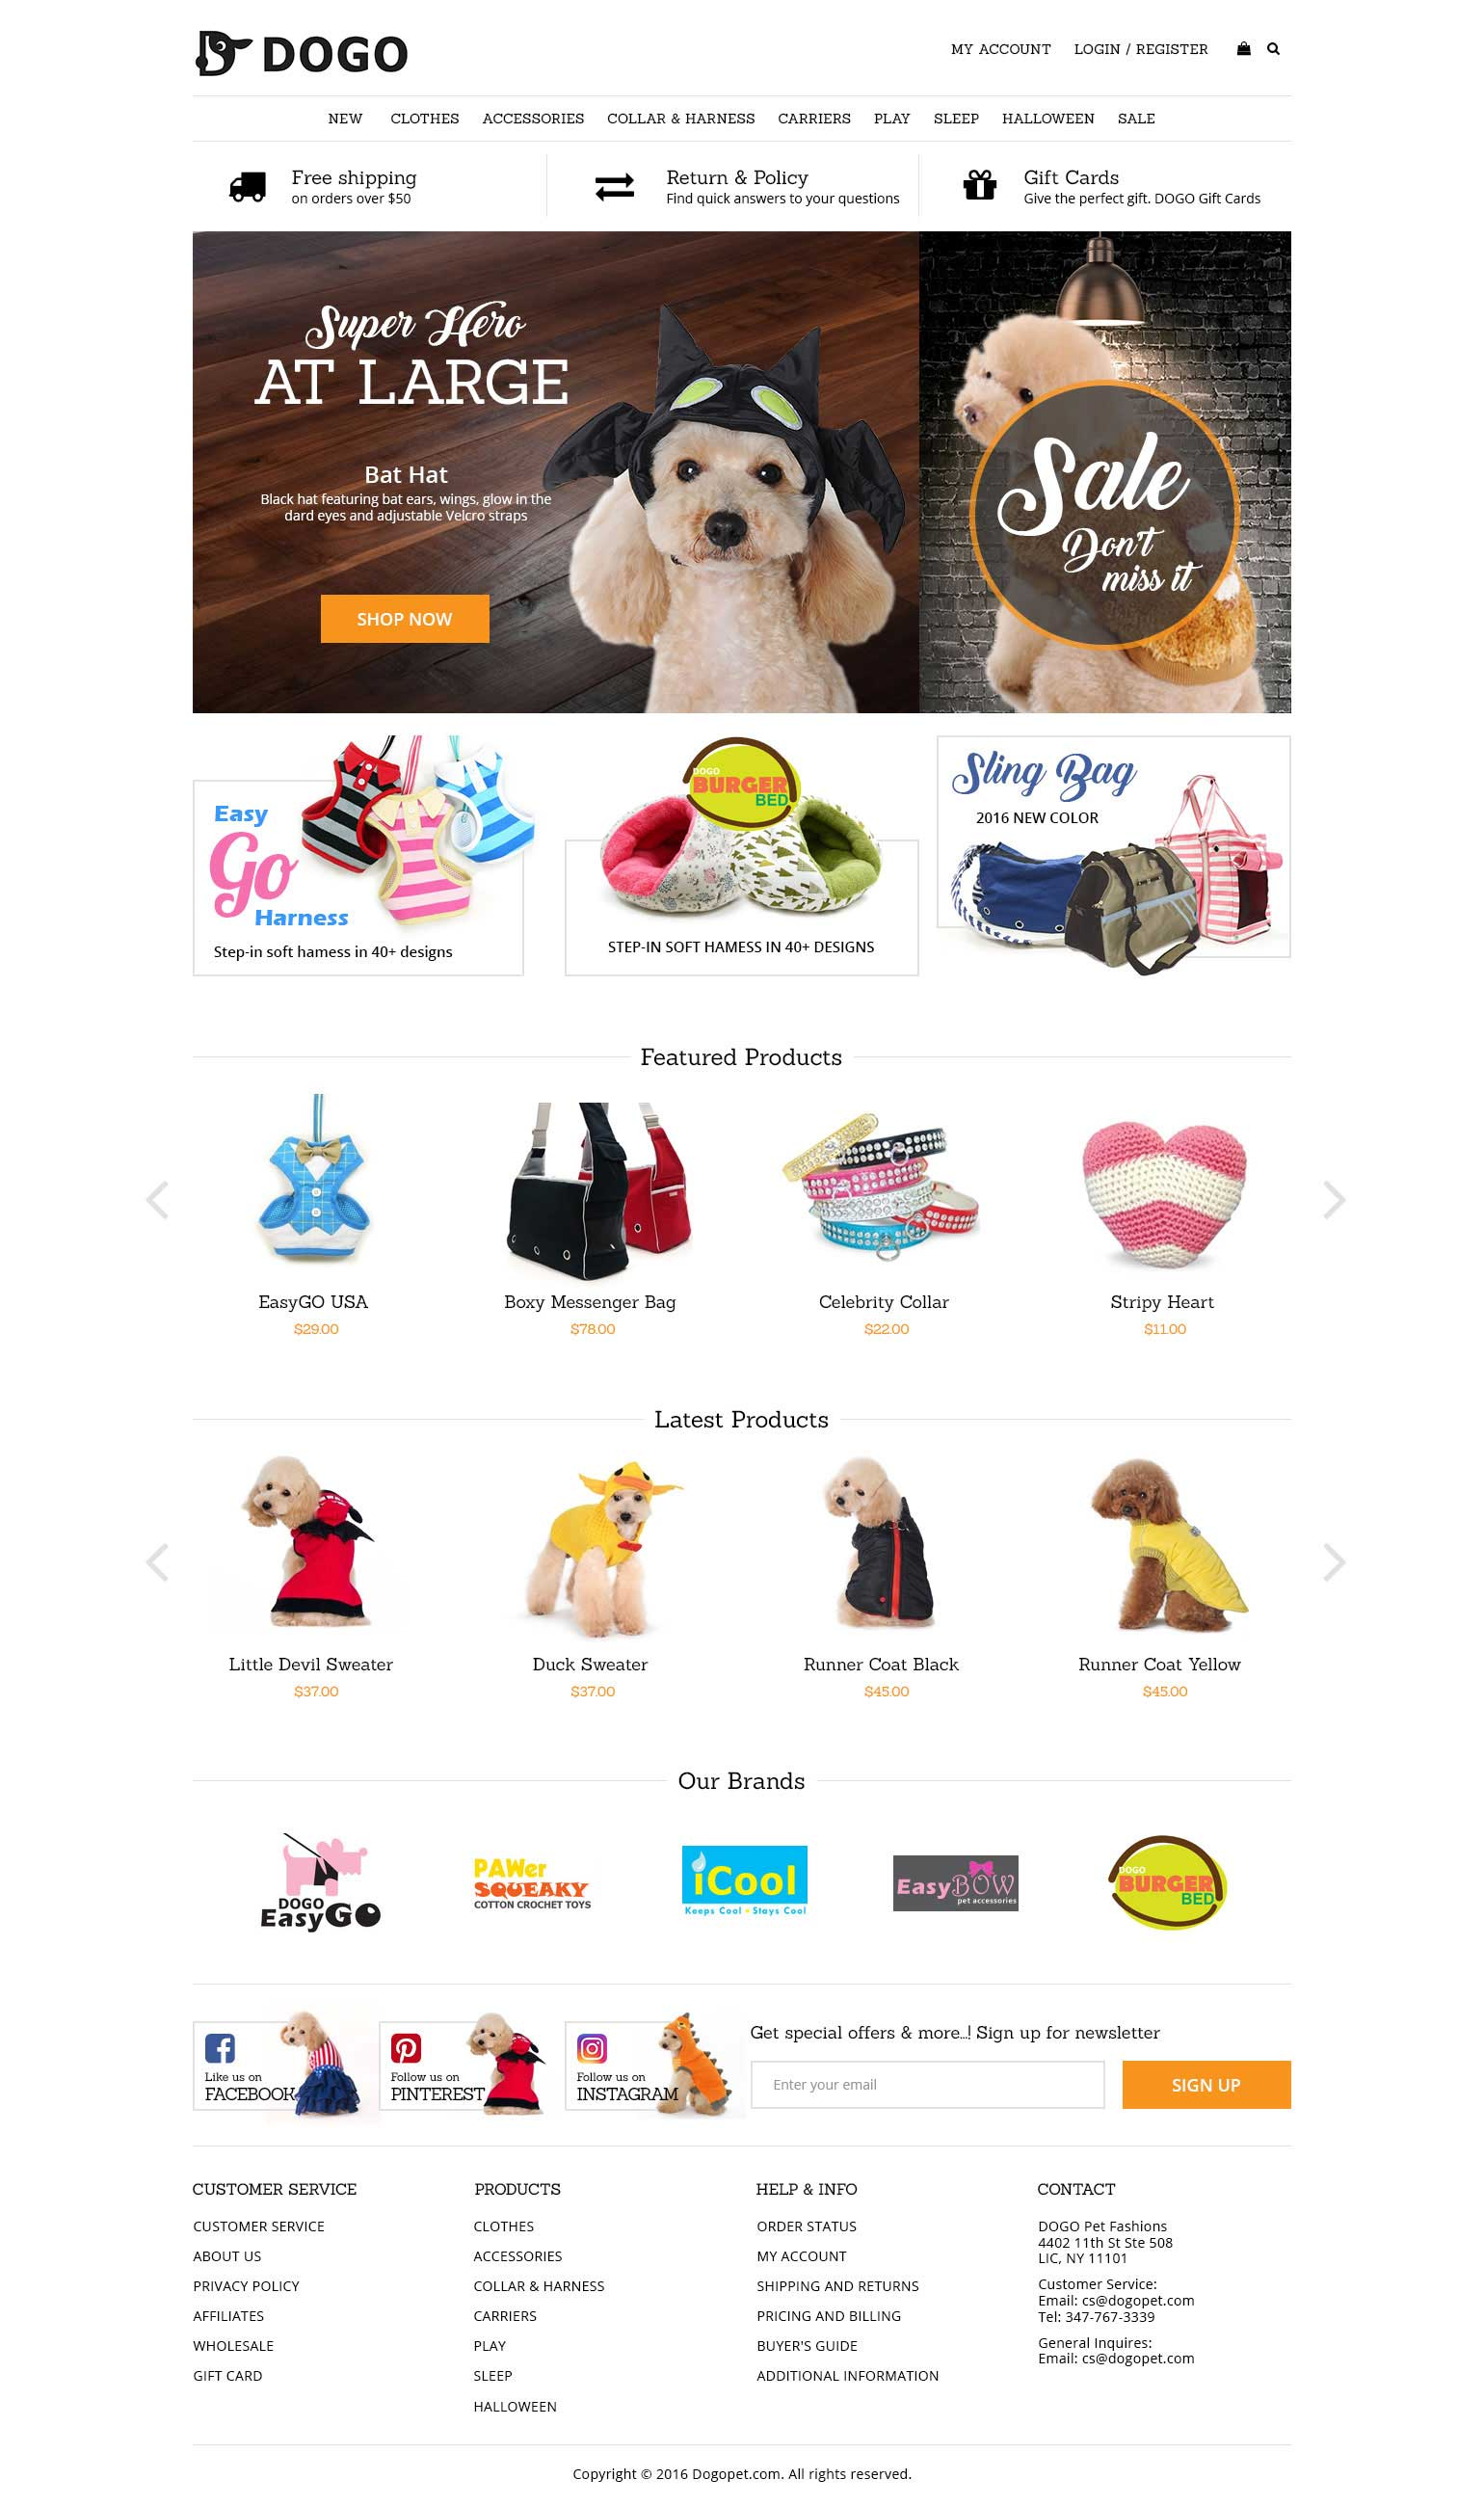 cd1c9e3bb7c Dogopet - Website Project by FK Designz